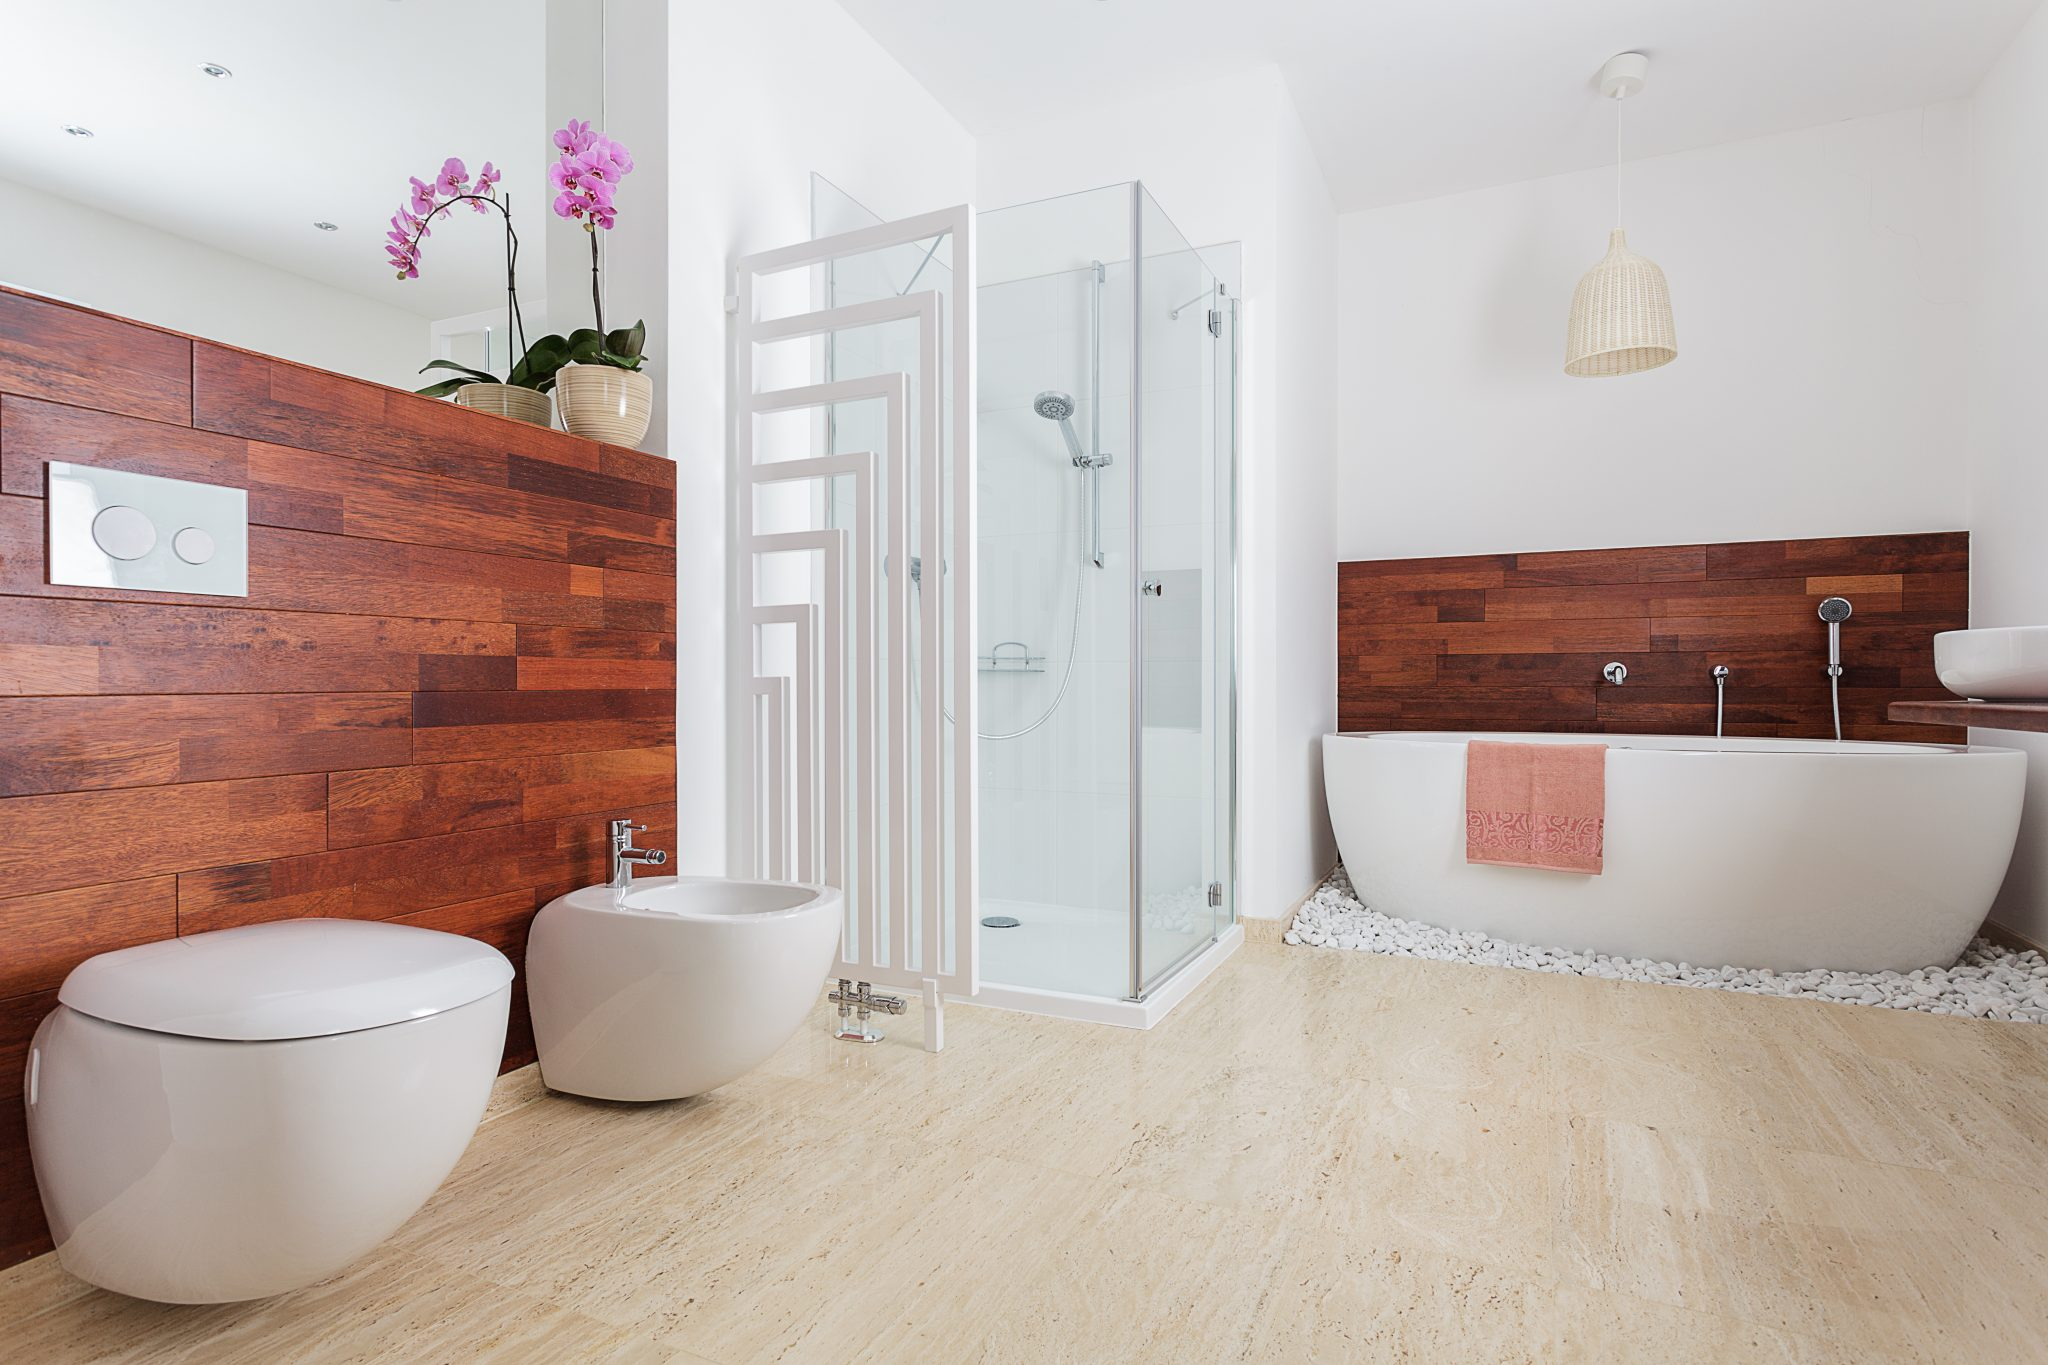 Benefits of Choosing Shower Doors When You Remodel